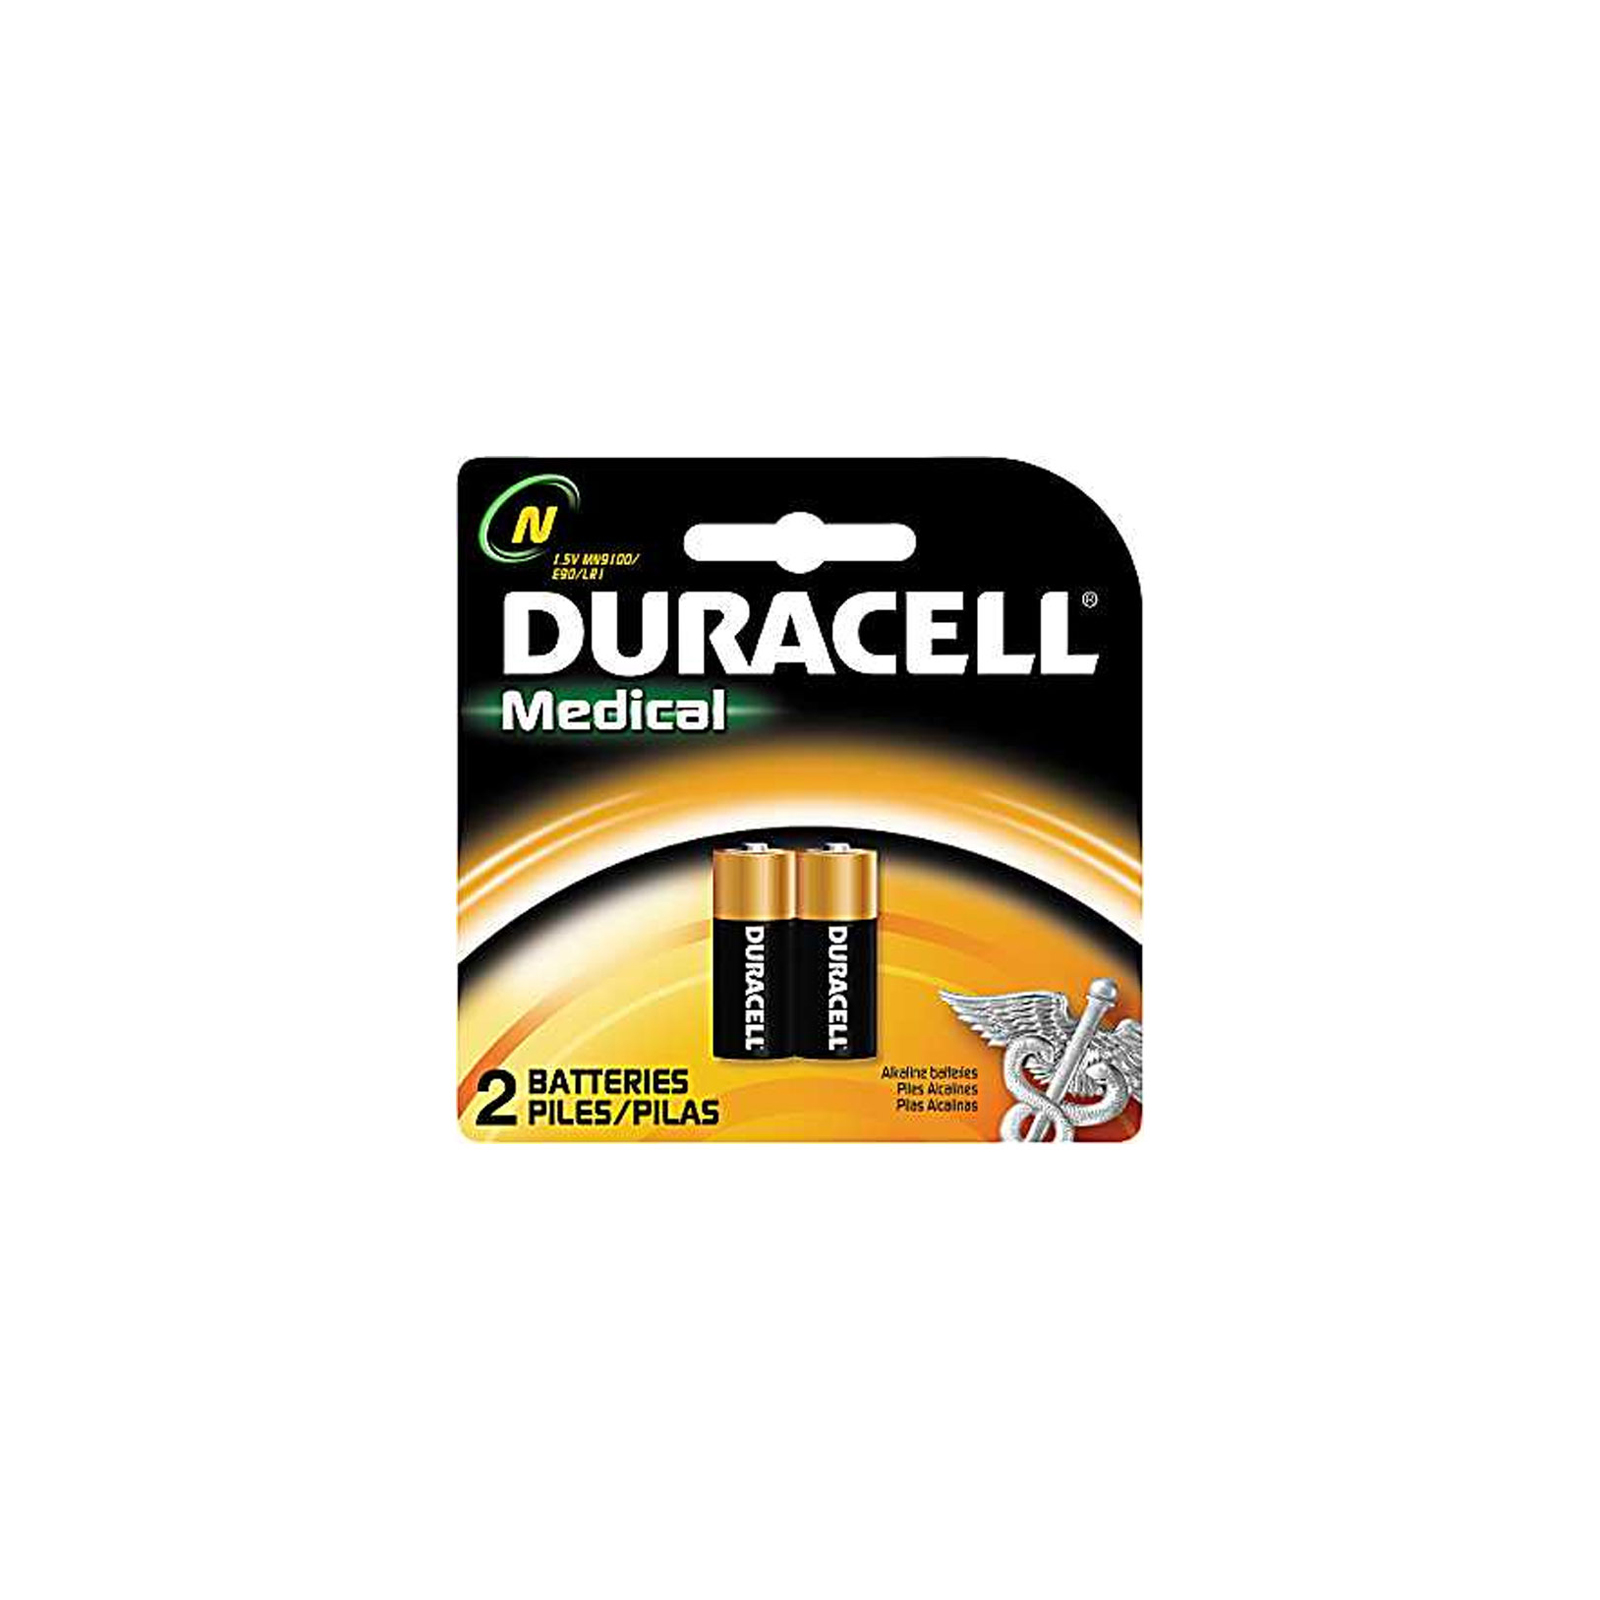 duracell mn9100b2 2pack medical 1 5 volt n size alkaline battery ebay. Black Bedroom Furniture Sets. Home Design Ideas